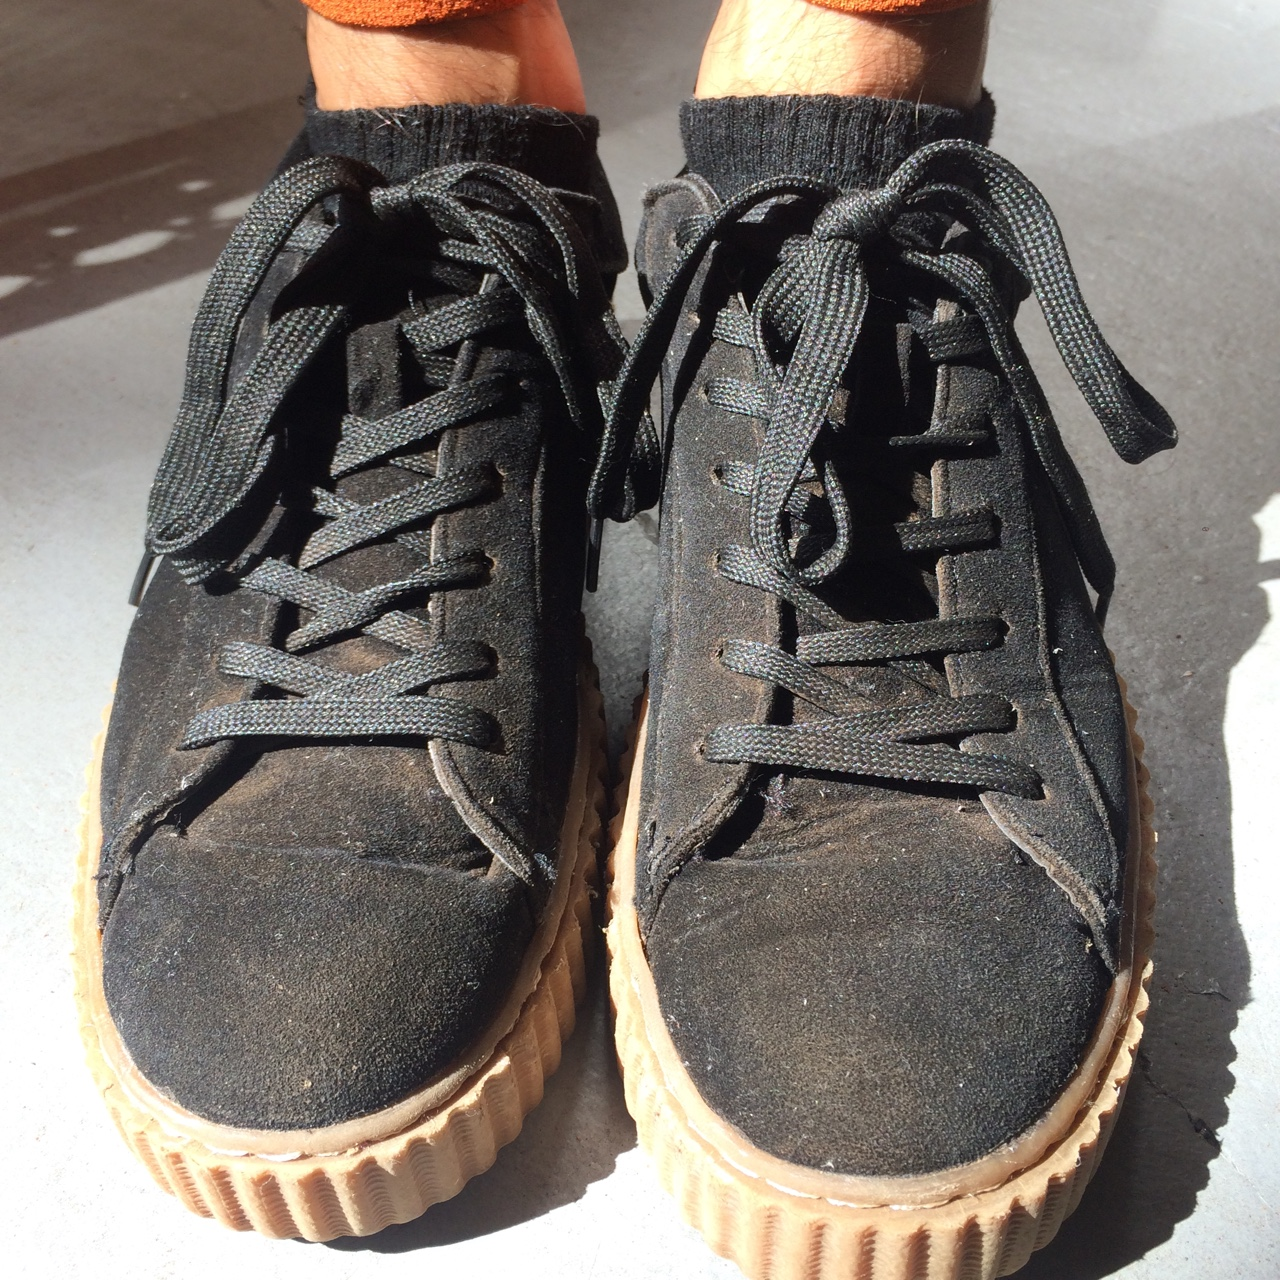 huge selection of 62e16 55a58 FAKE Puma Rihanna Fenty Creepers. Faux suede. Only... - Depop